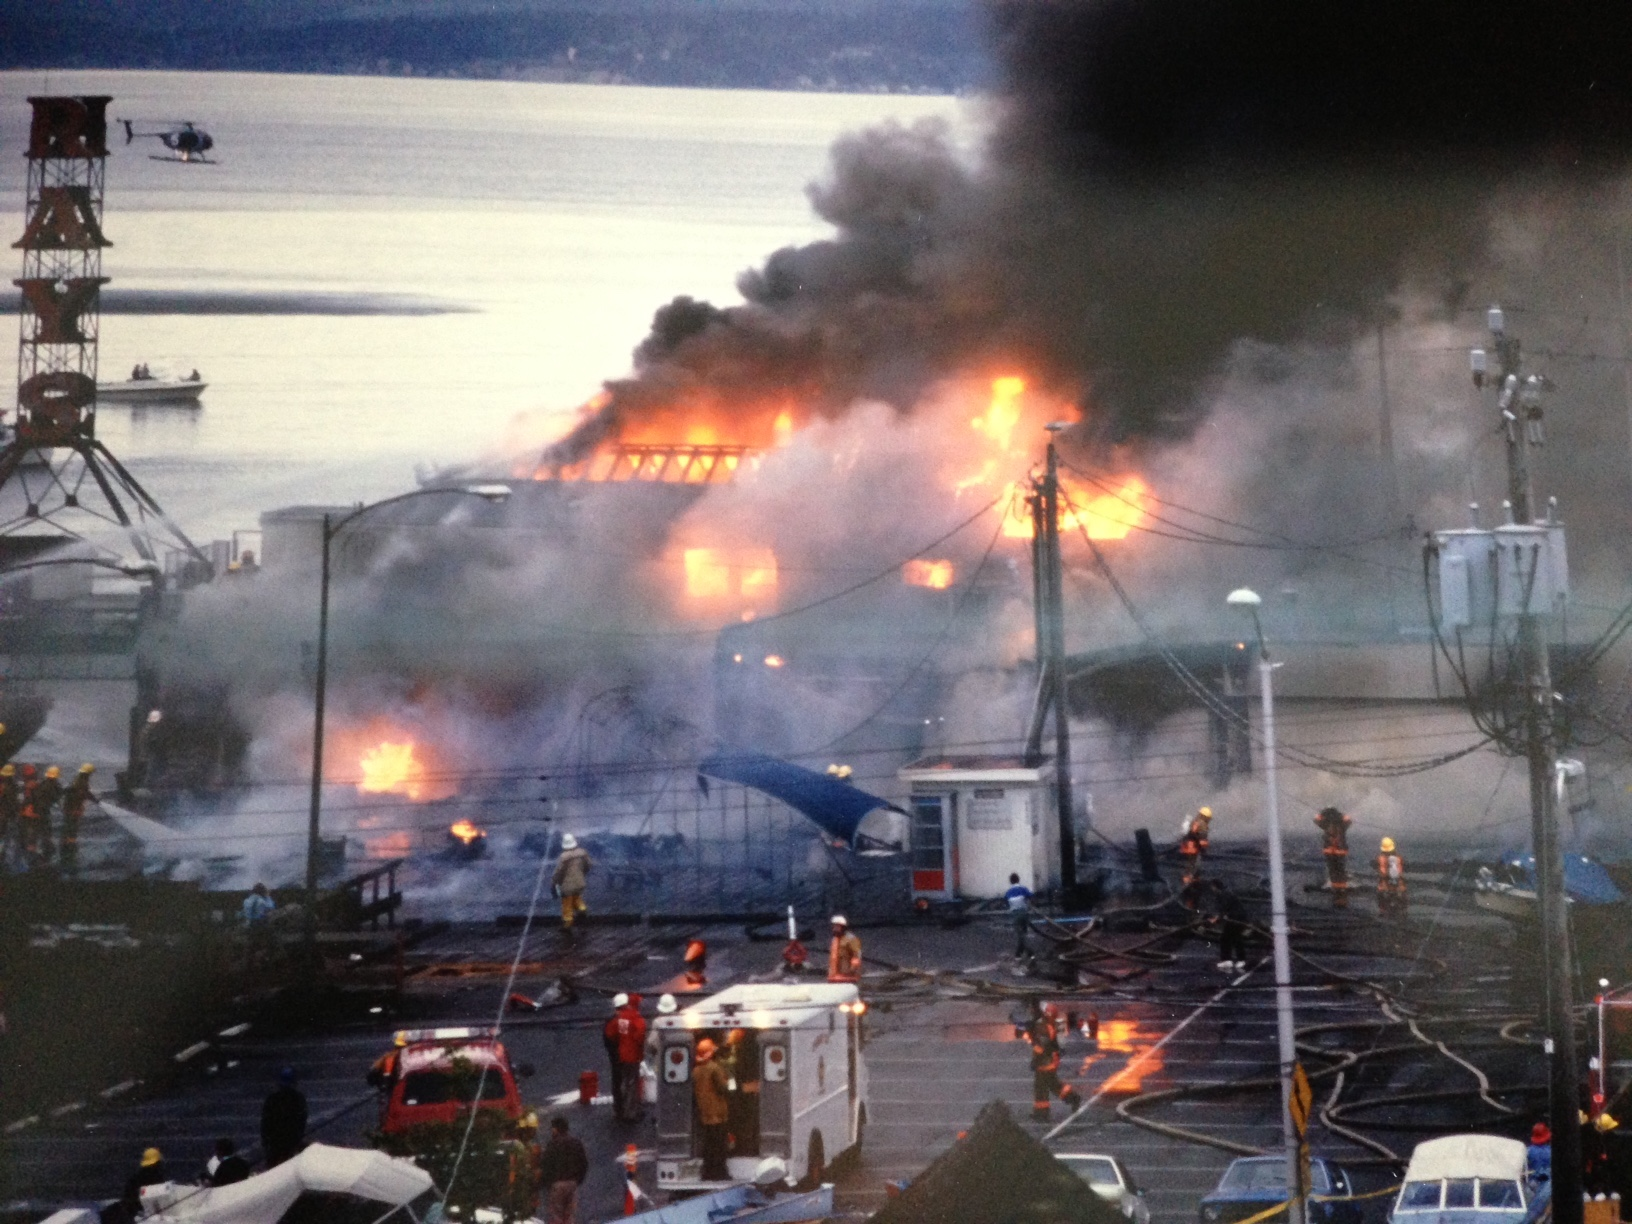 25 30 Seattle: Fire Celebration At Ray's Boathouse To Commemorate 30 Years